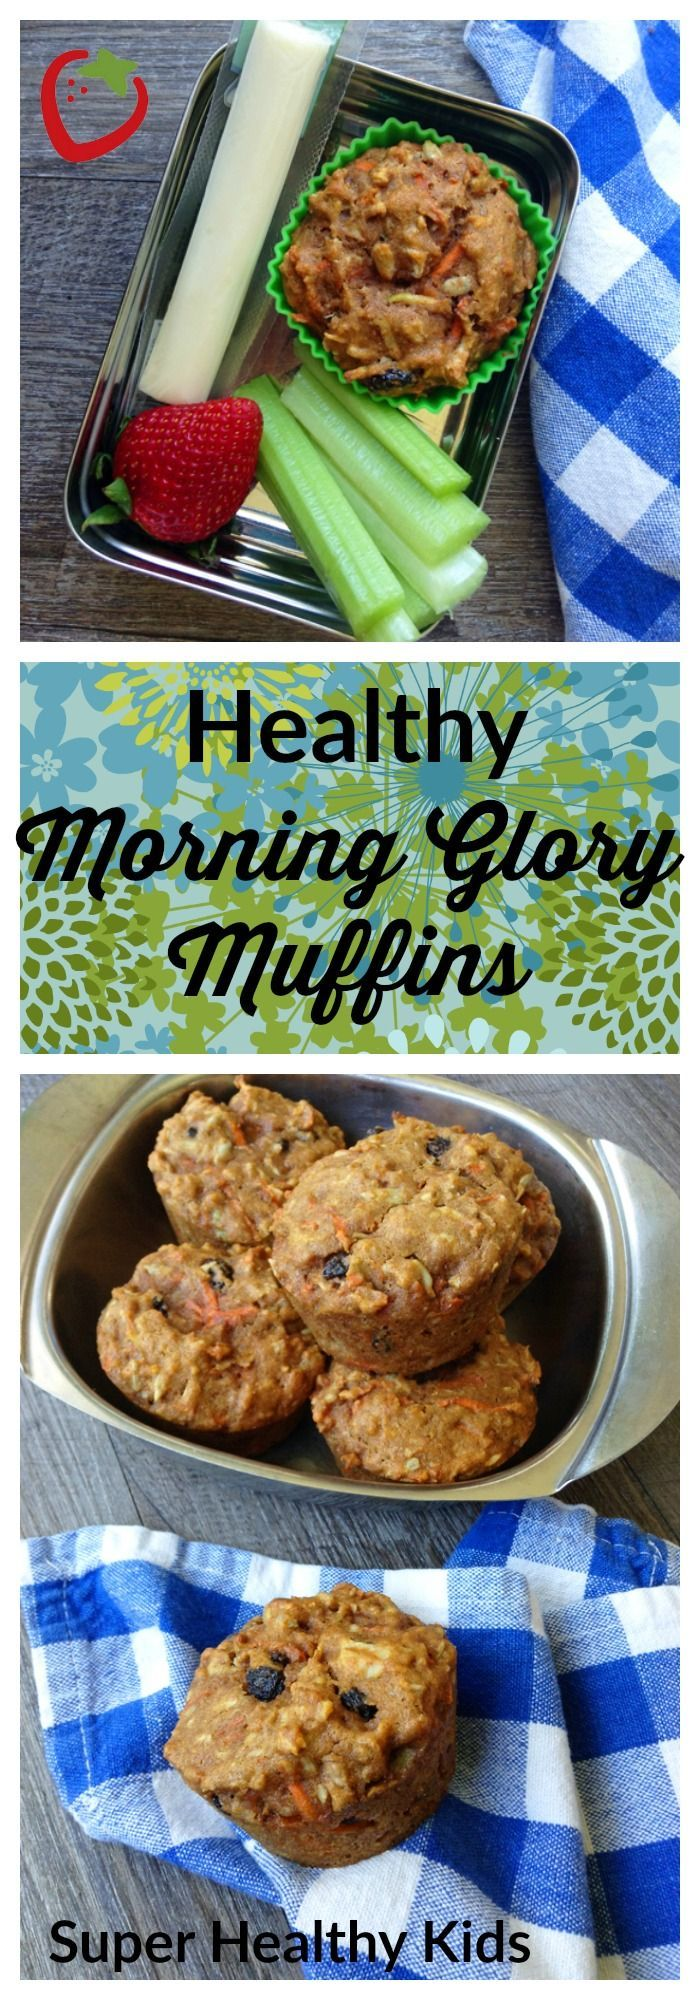 We gave classic Morning Glory Muffins a makeover to include more whole grains, less sugar, and all the fruits, veggies, and nuts that make the original famous.